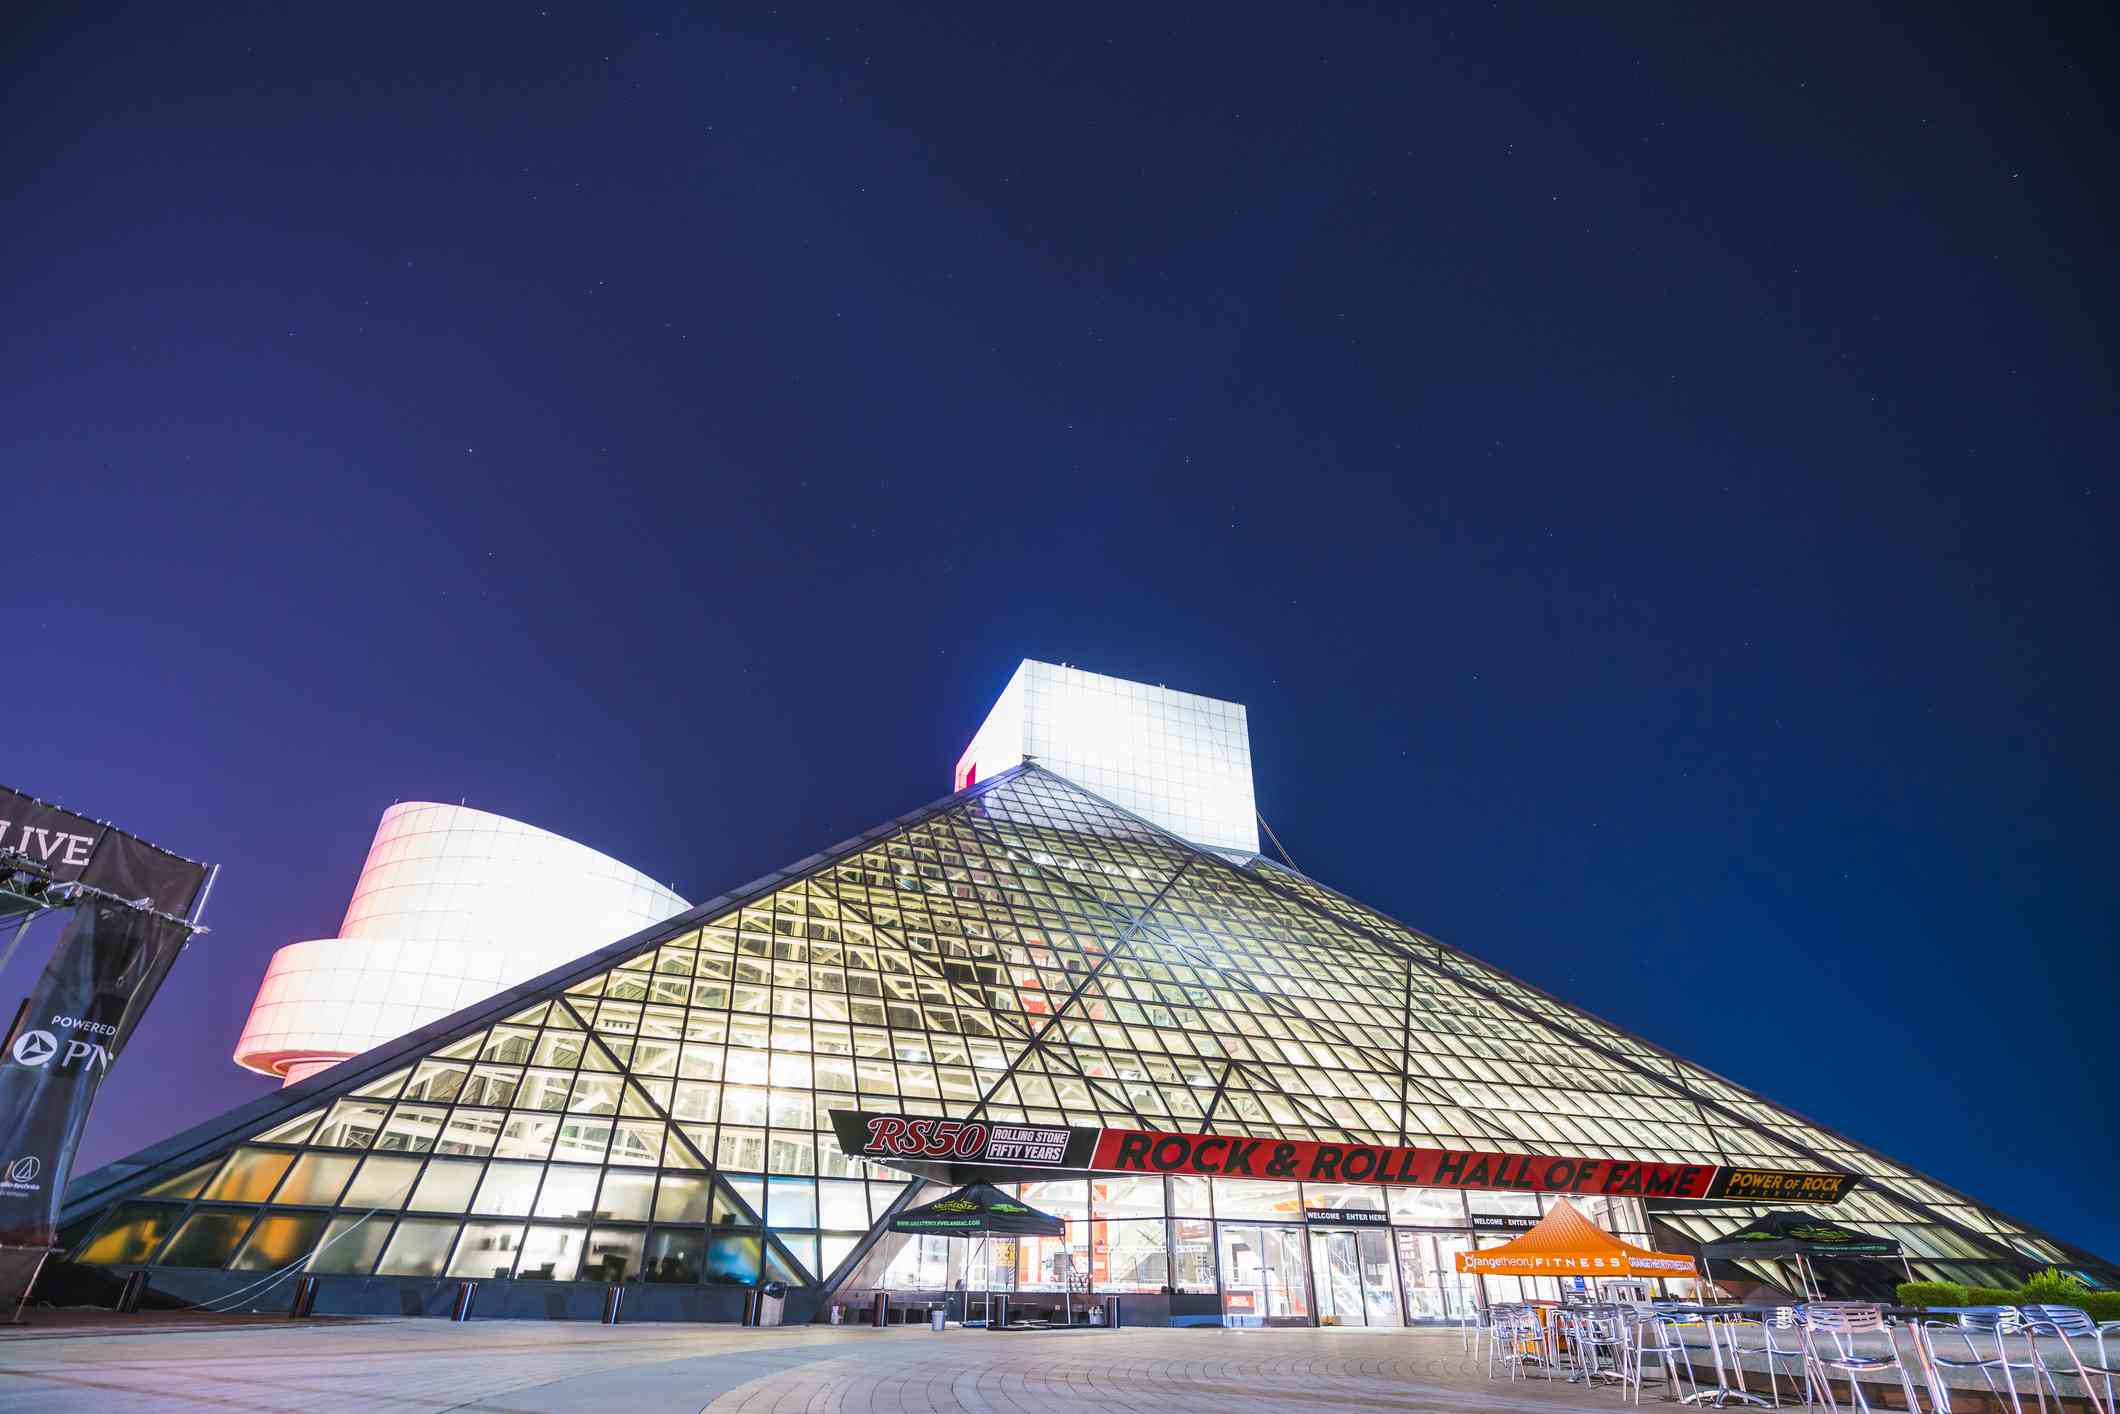 Cleveland Rock and Roll hall of fame at night